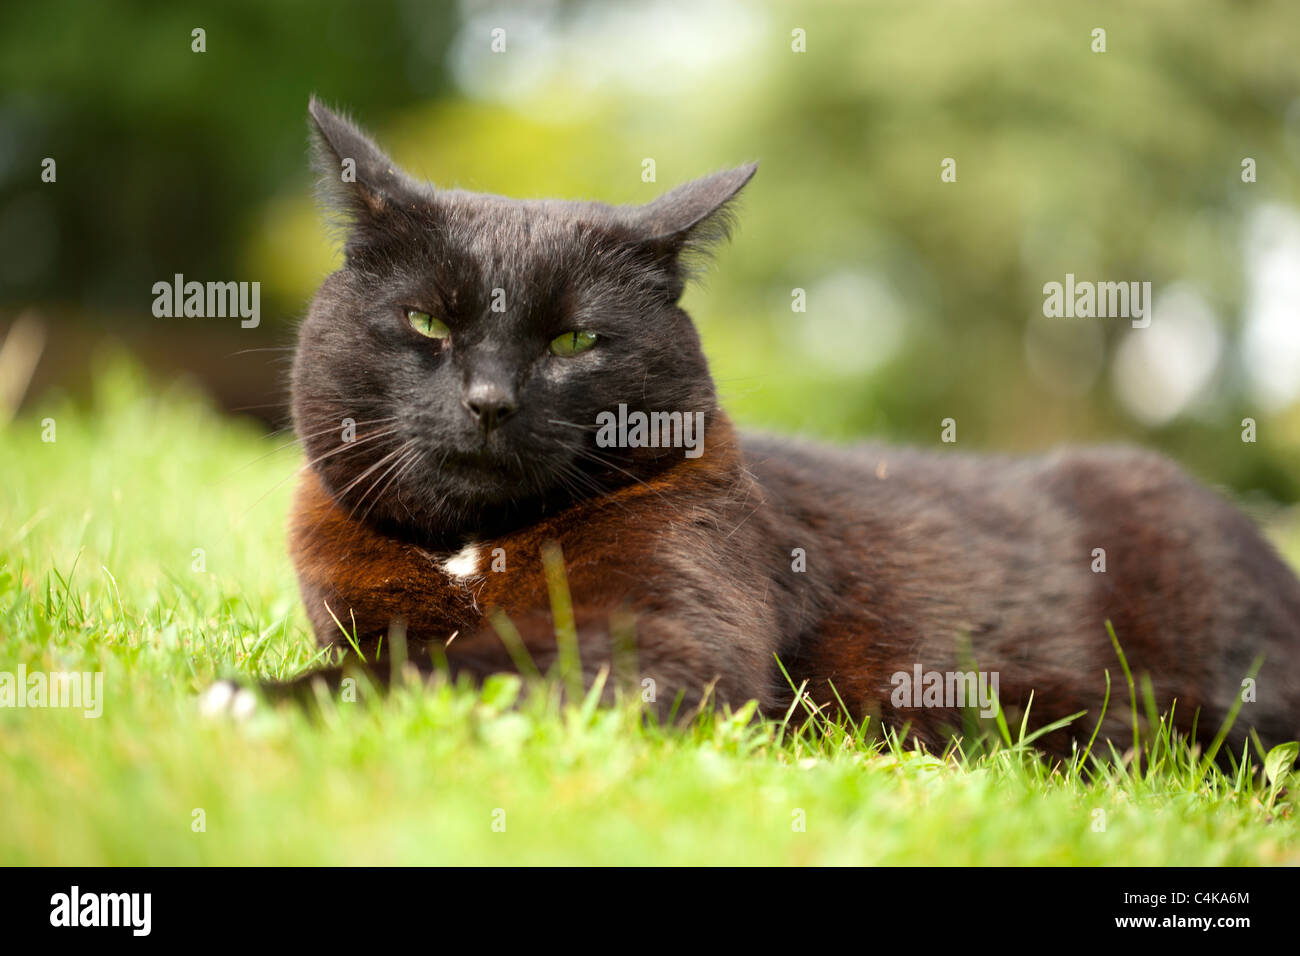 Black cat sitting on grass looking fierce - Stock Image